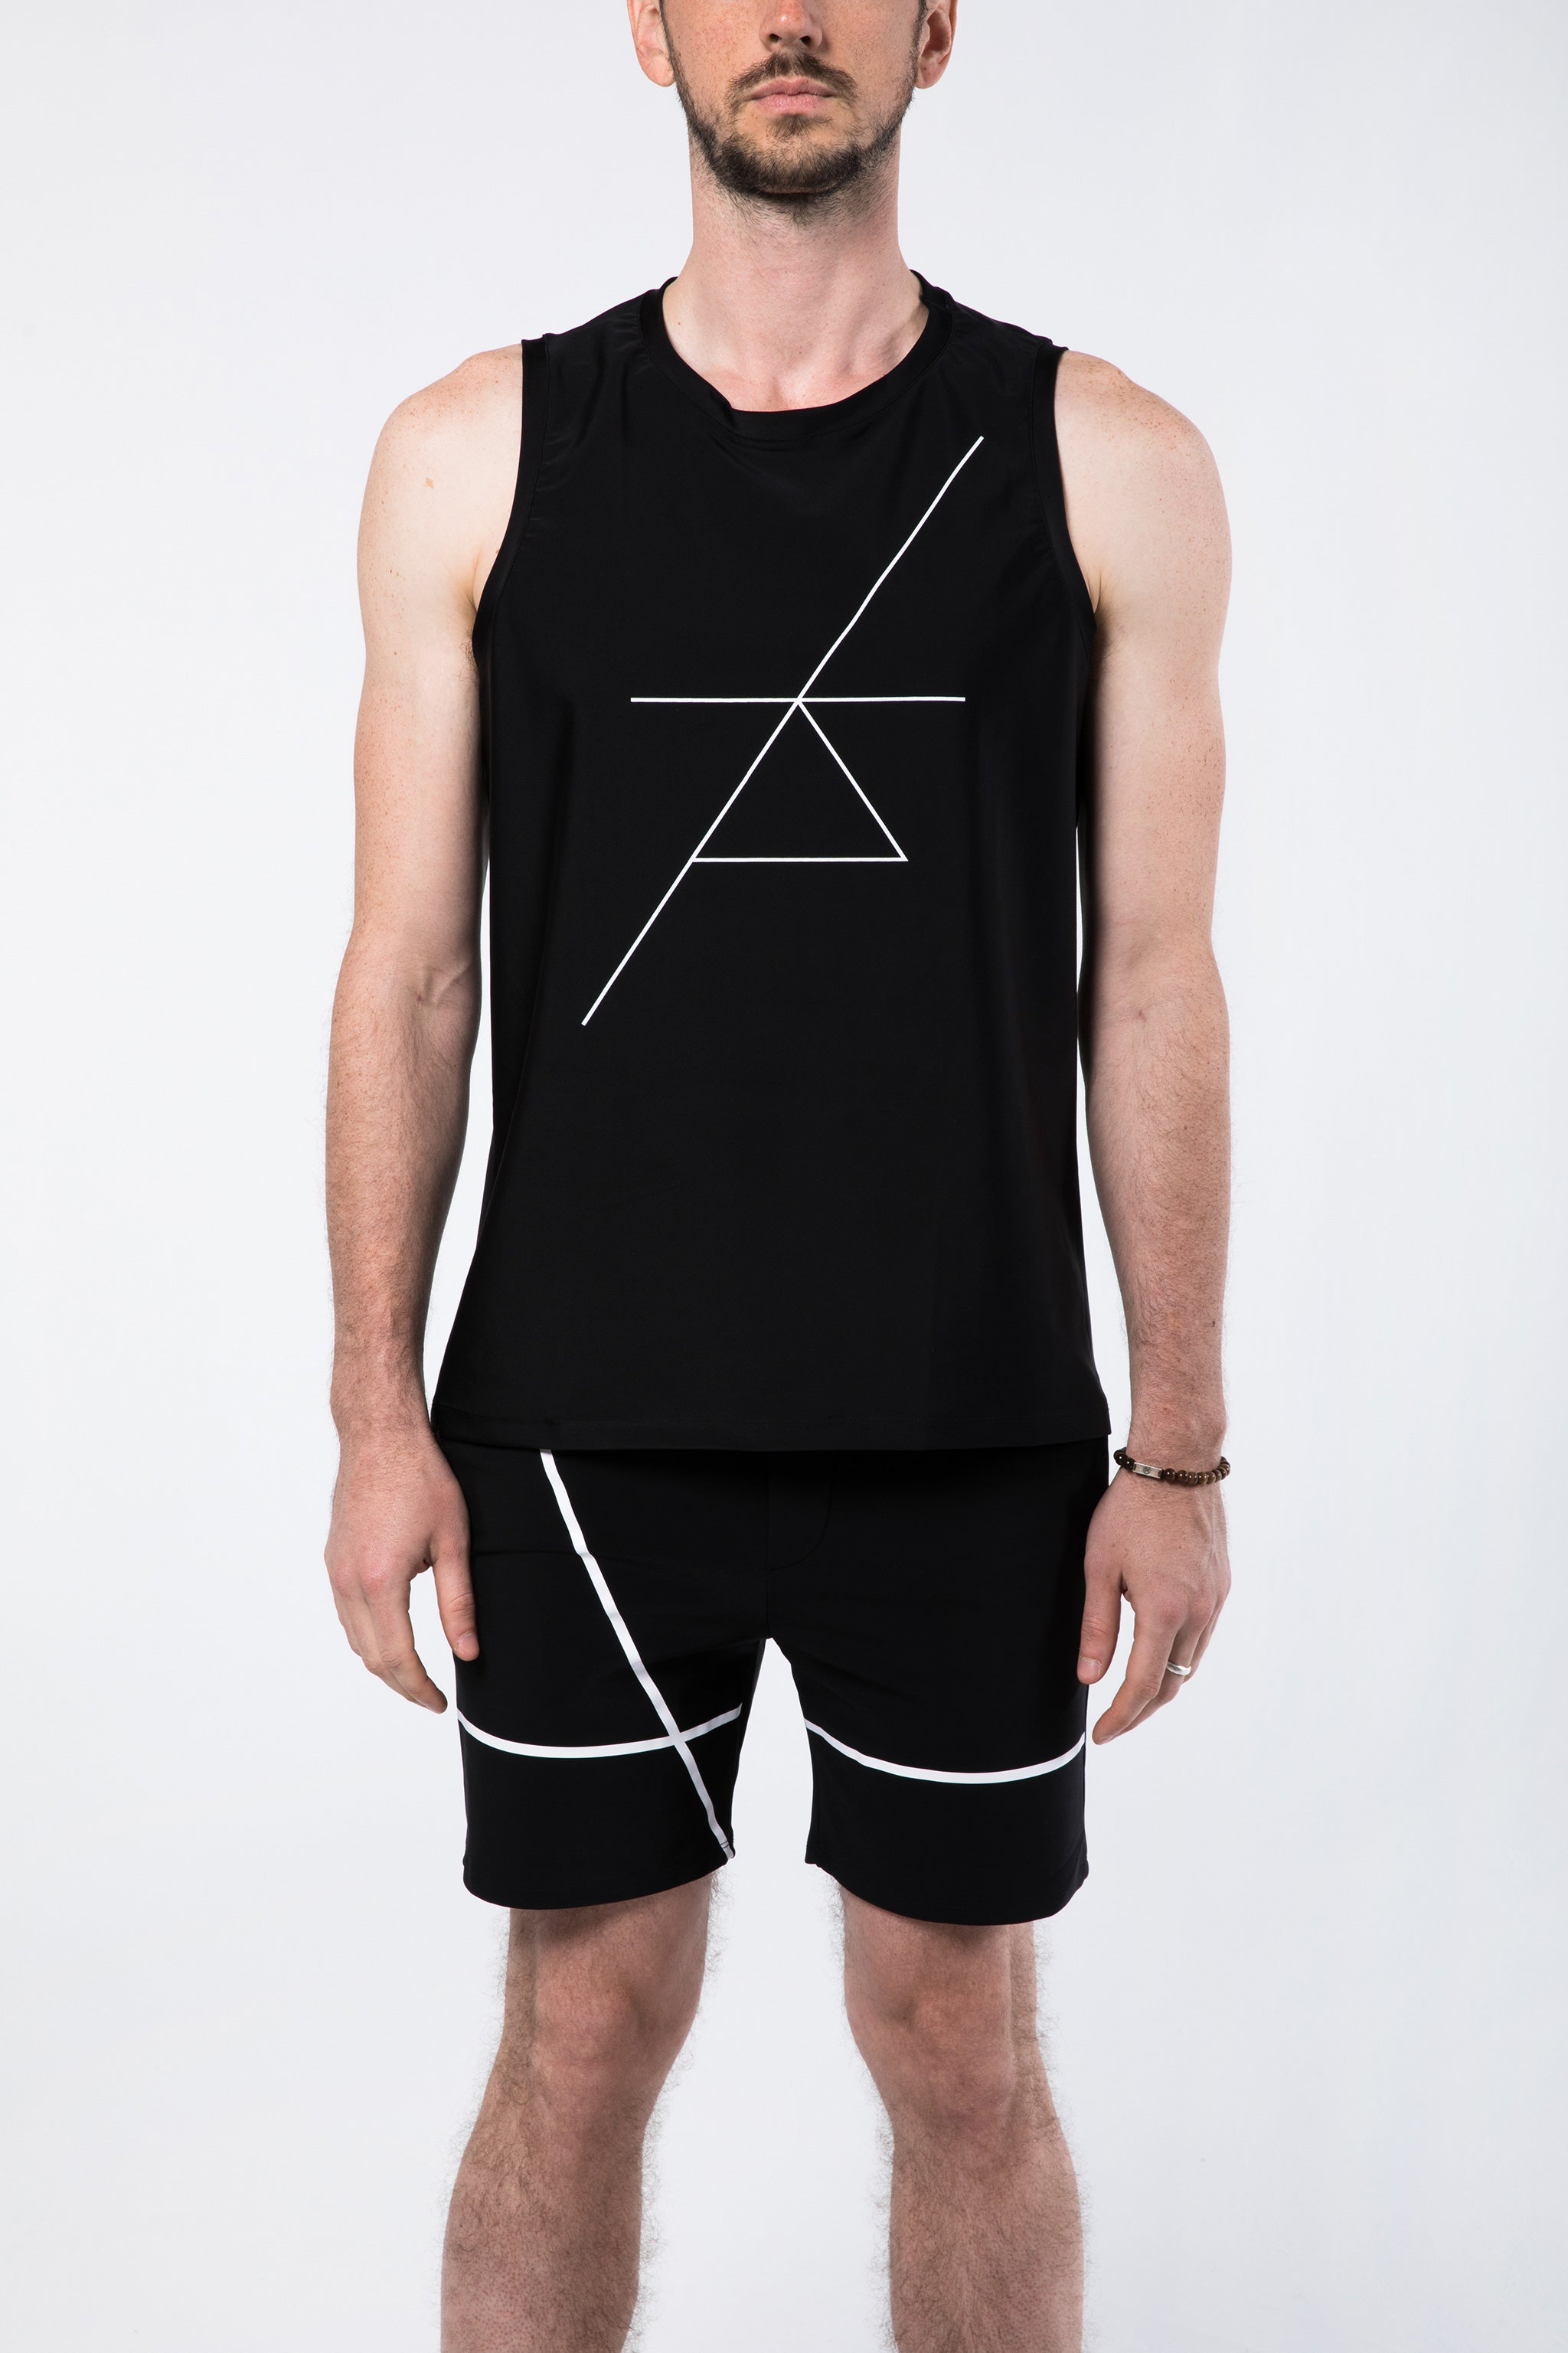 Man in Sleeveless Yoga Shirt and Yoga Shorts for Men